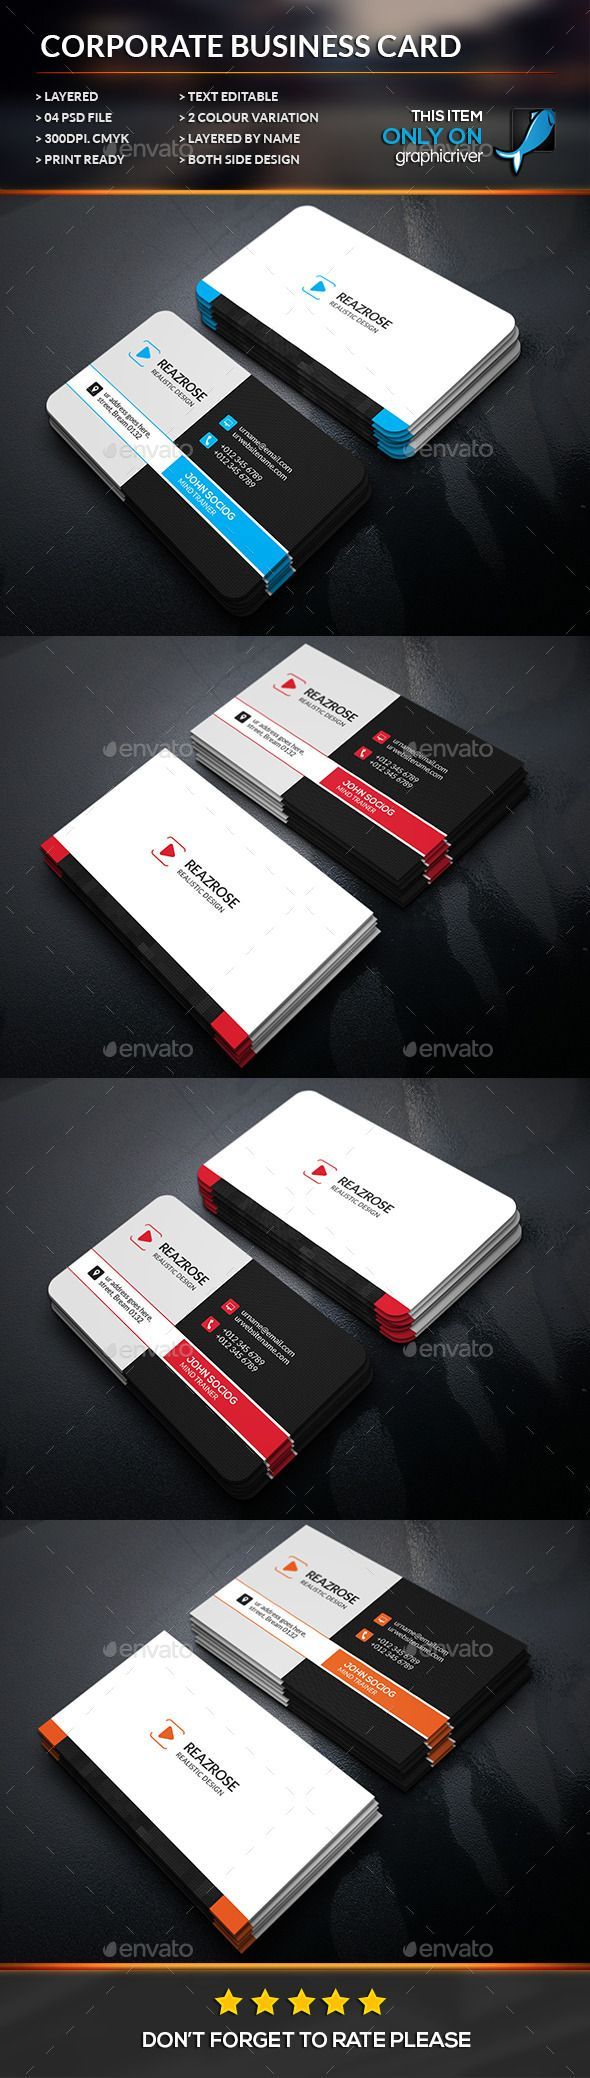 9469 Best Business Cards Maker Images On Pinterest Business Card